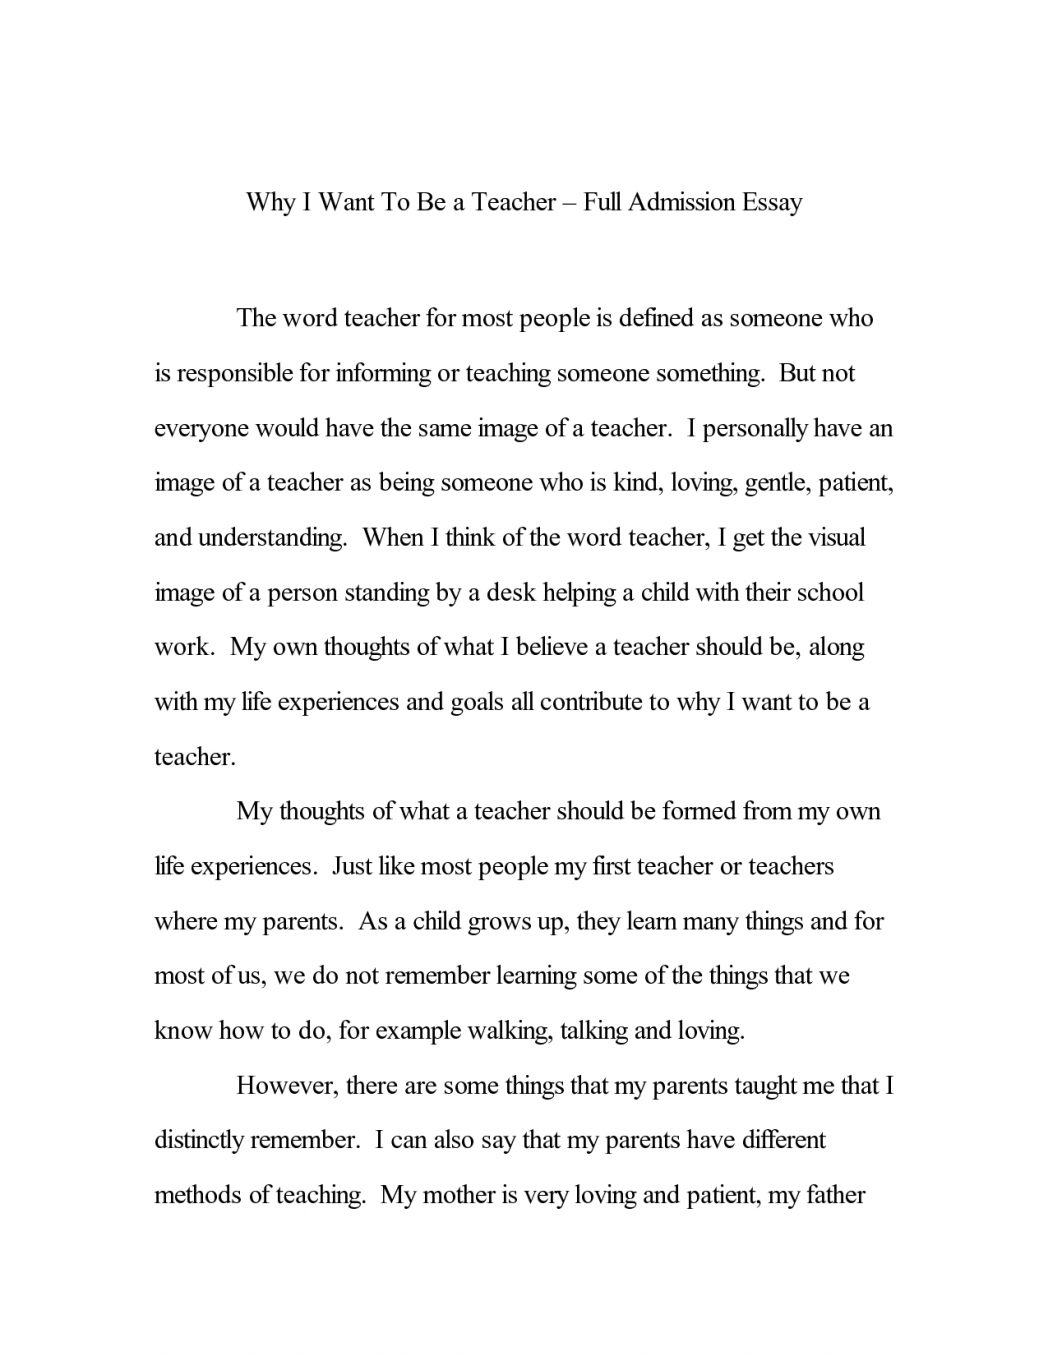 006 College Application Essays Format Cover Letter And Tips Personal Statement Ideal Vistalist Co Inten Writing 1048x1356 Beautiful Essay Admission Common App Confidential Full